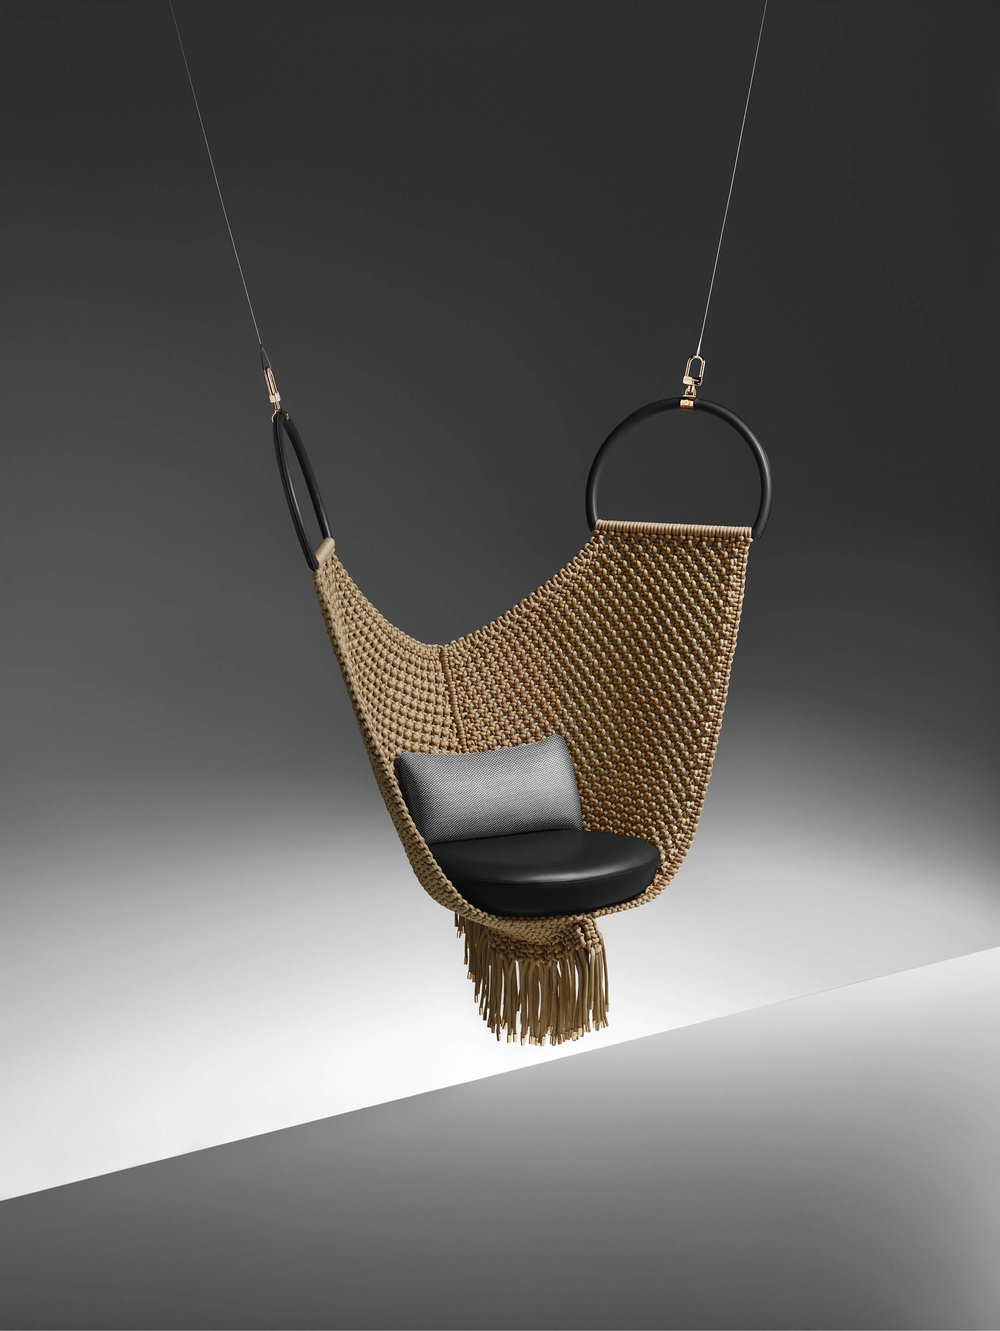 Swing Chair · Patricia Urquiola.